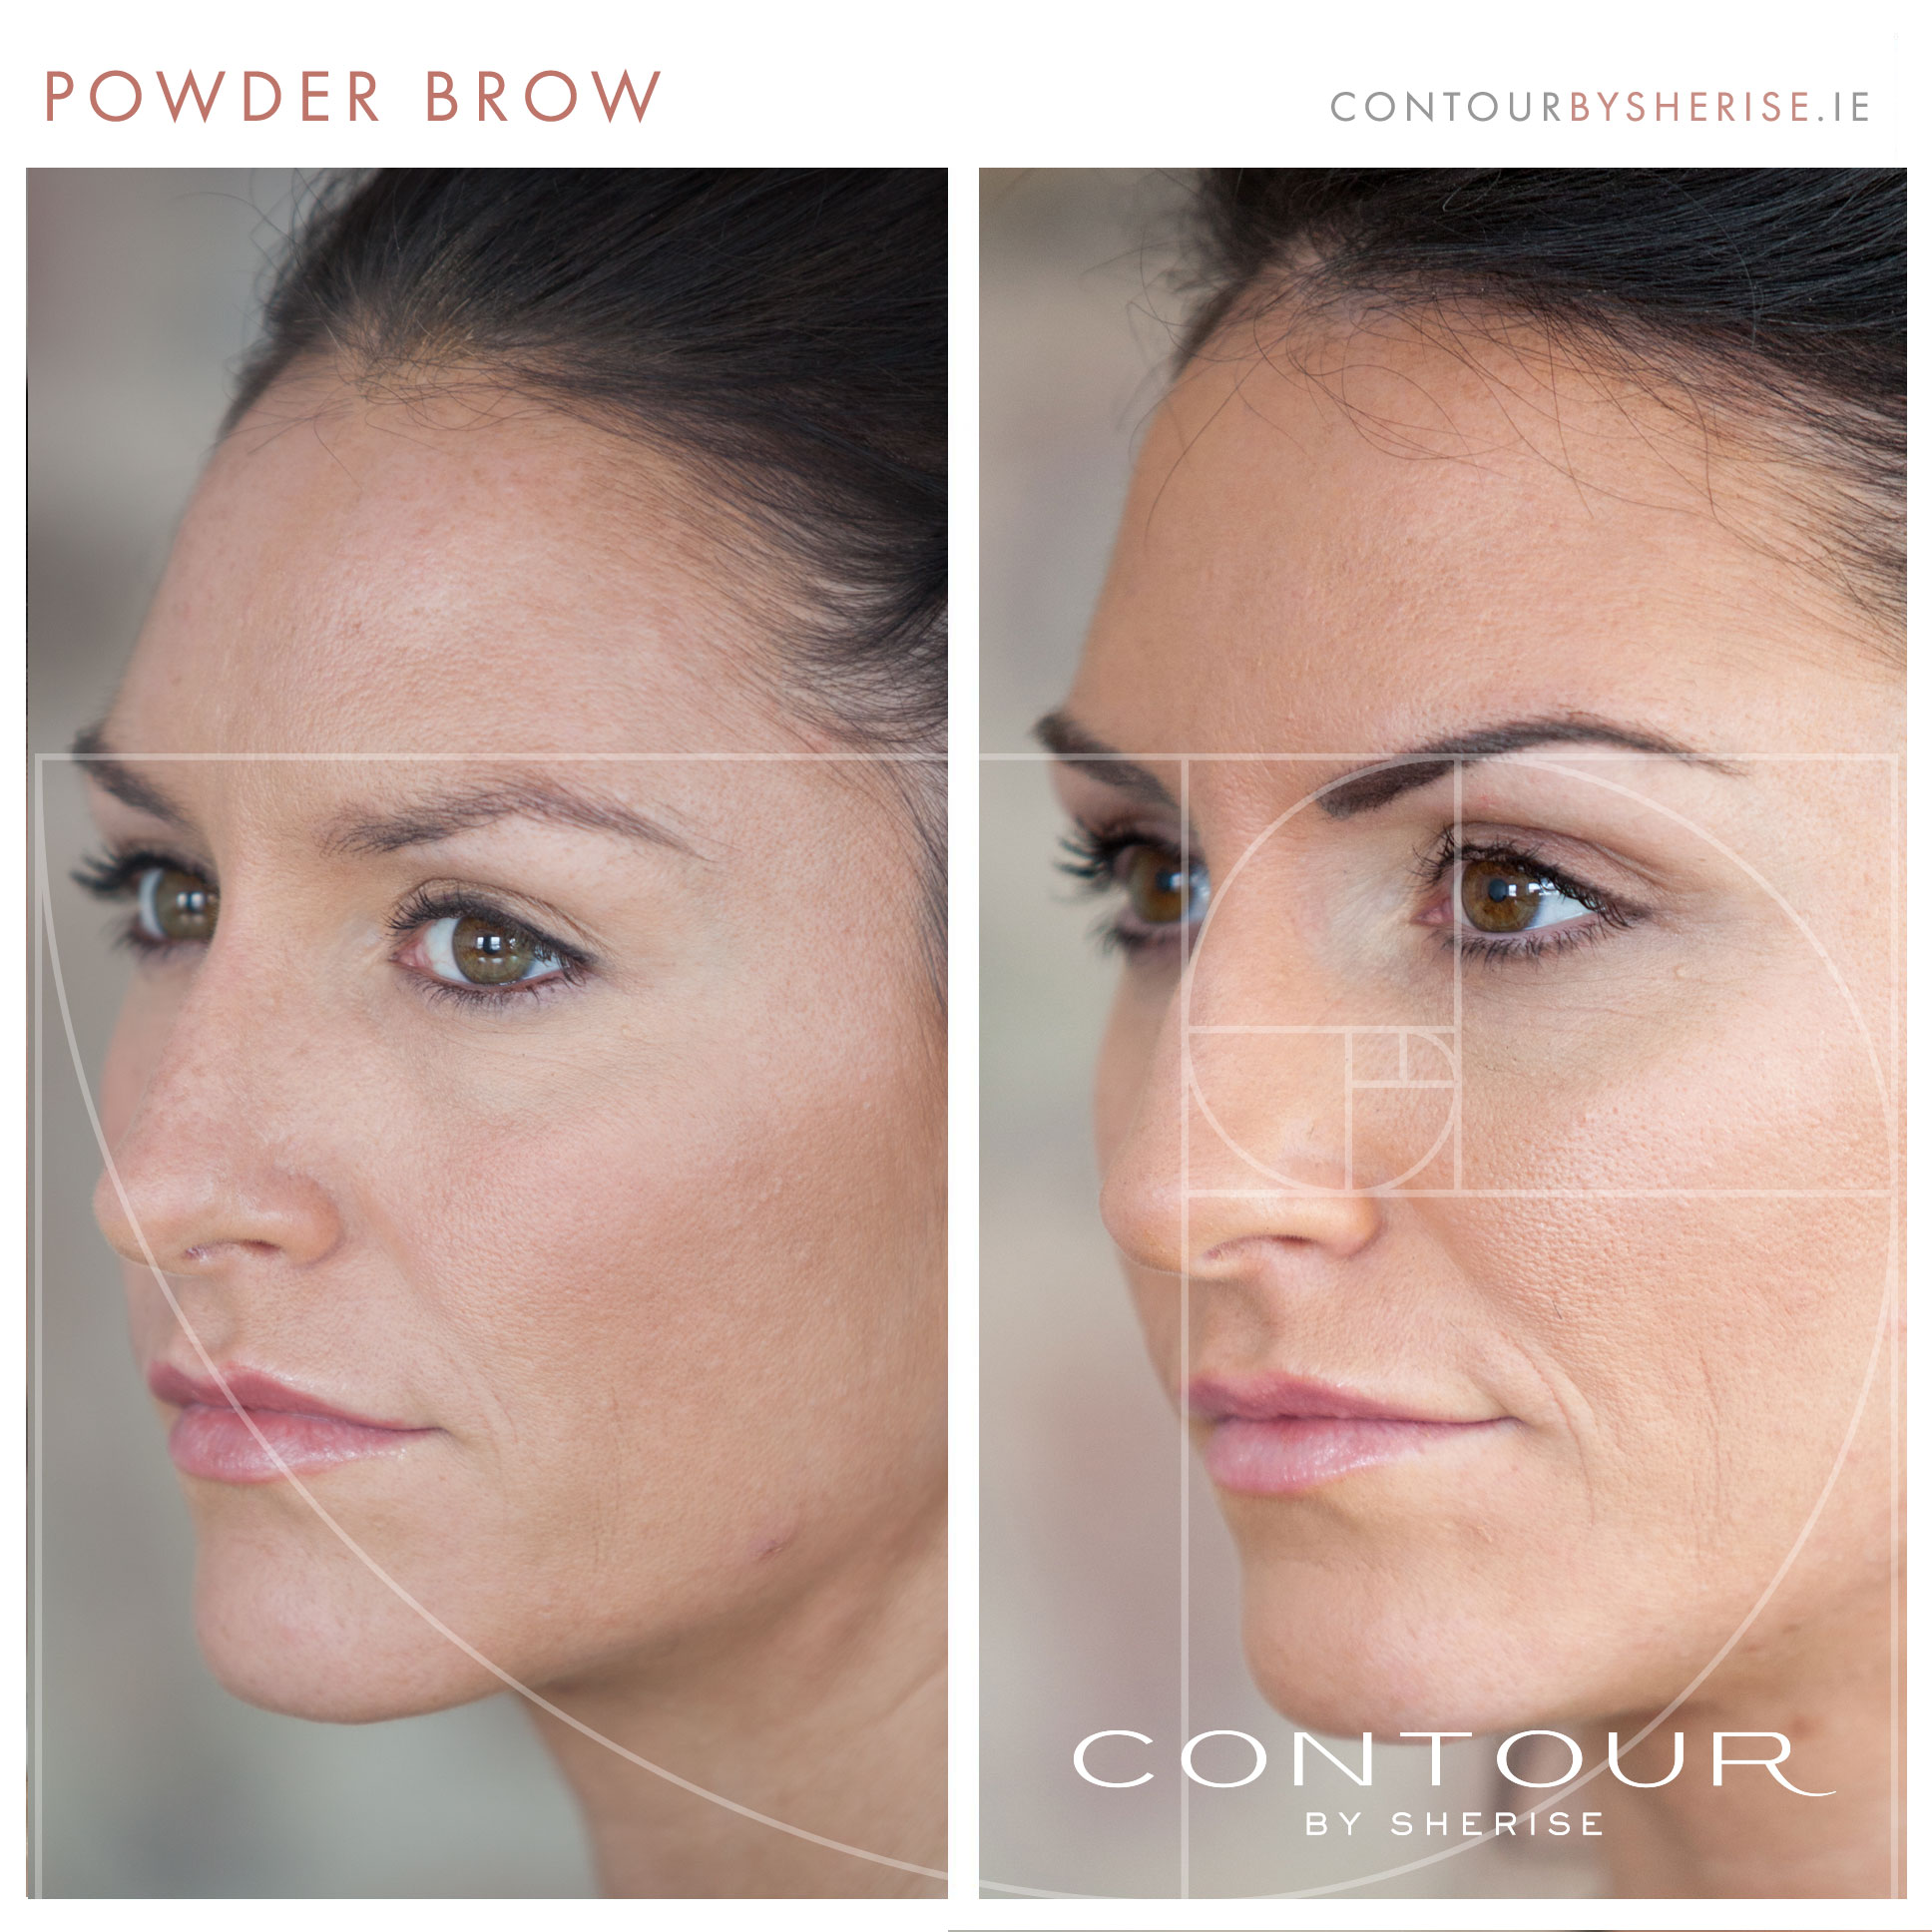 Powder Brow- Semi Permanent Make Up